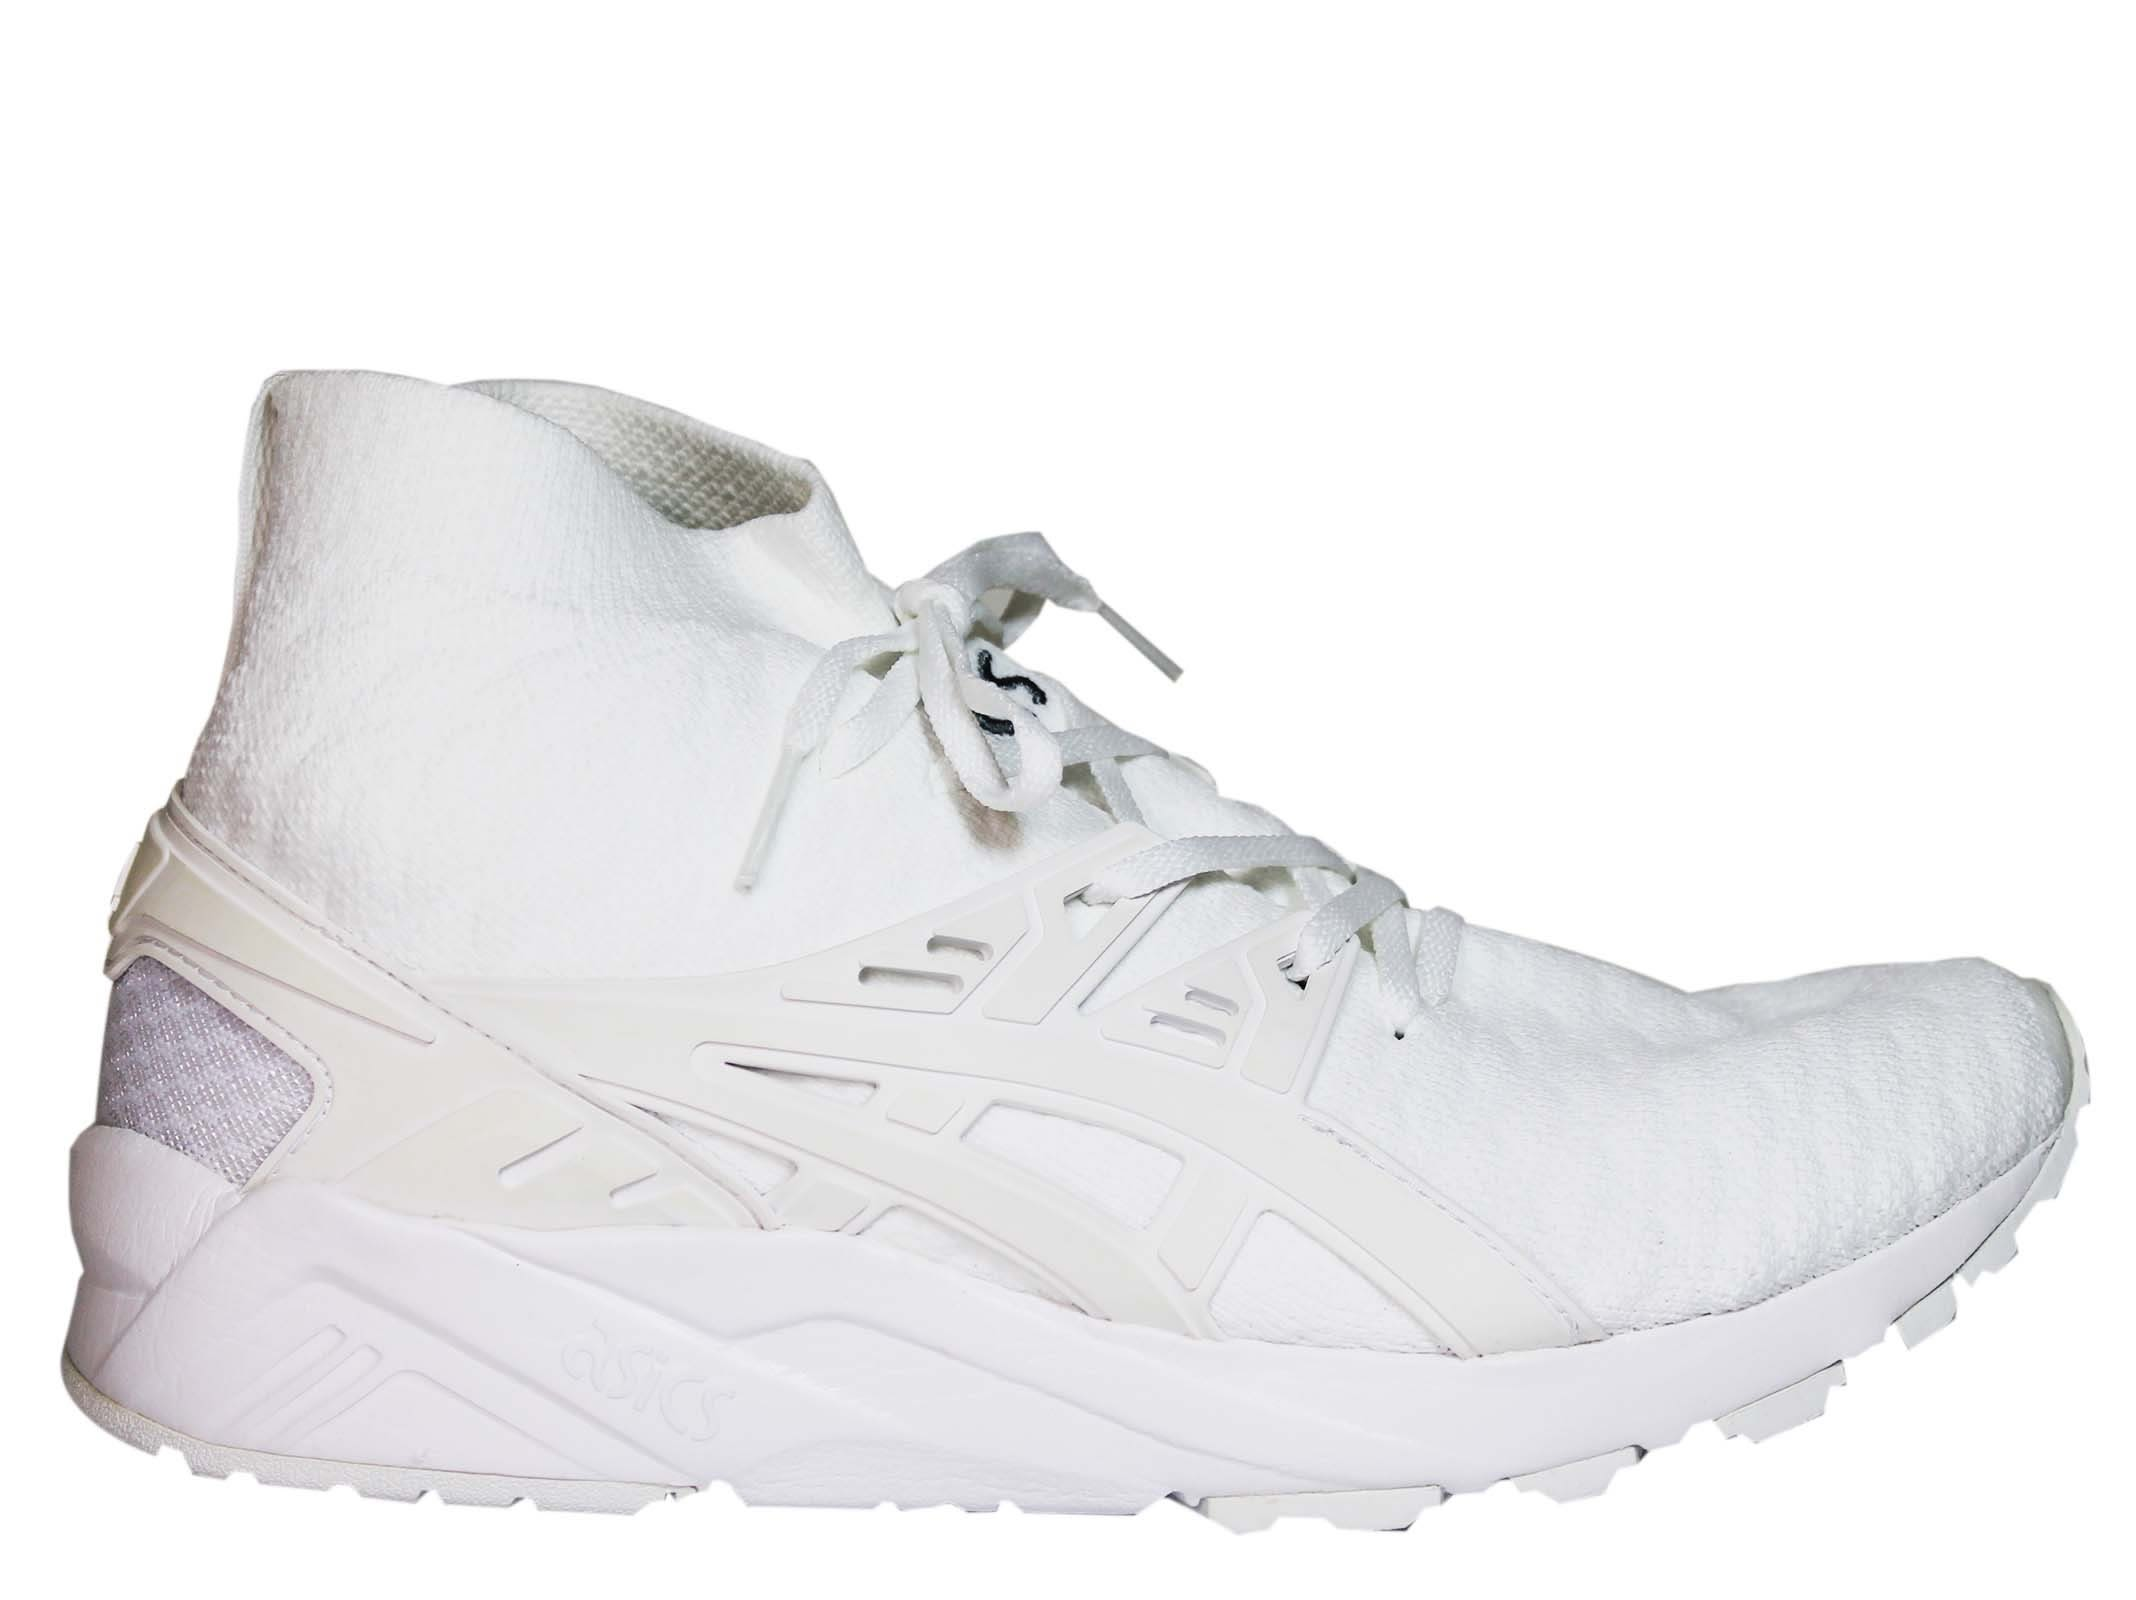 Asics White Gel Kayano Flyknit Sneakers